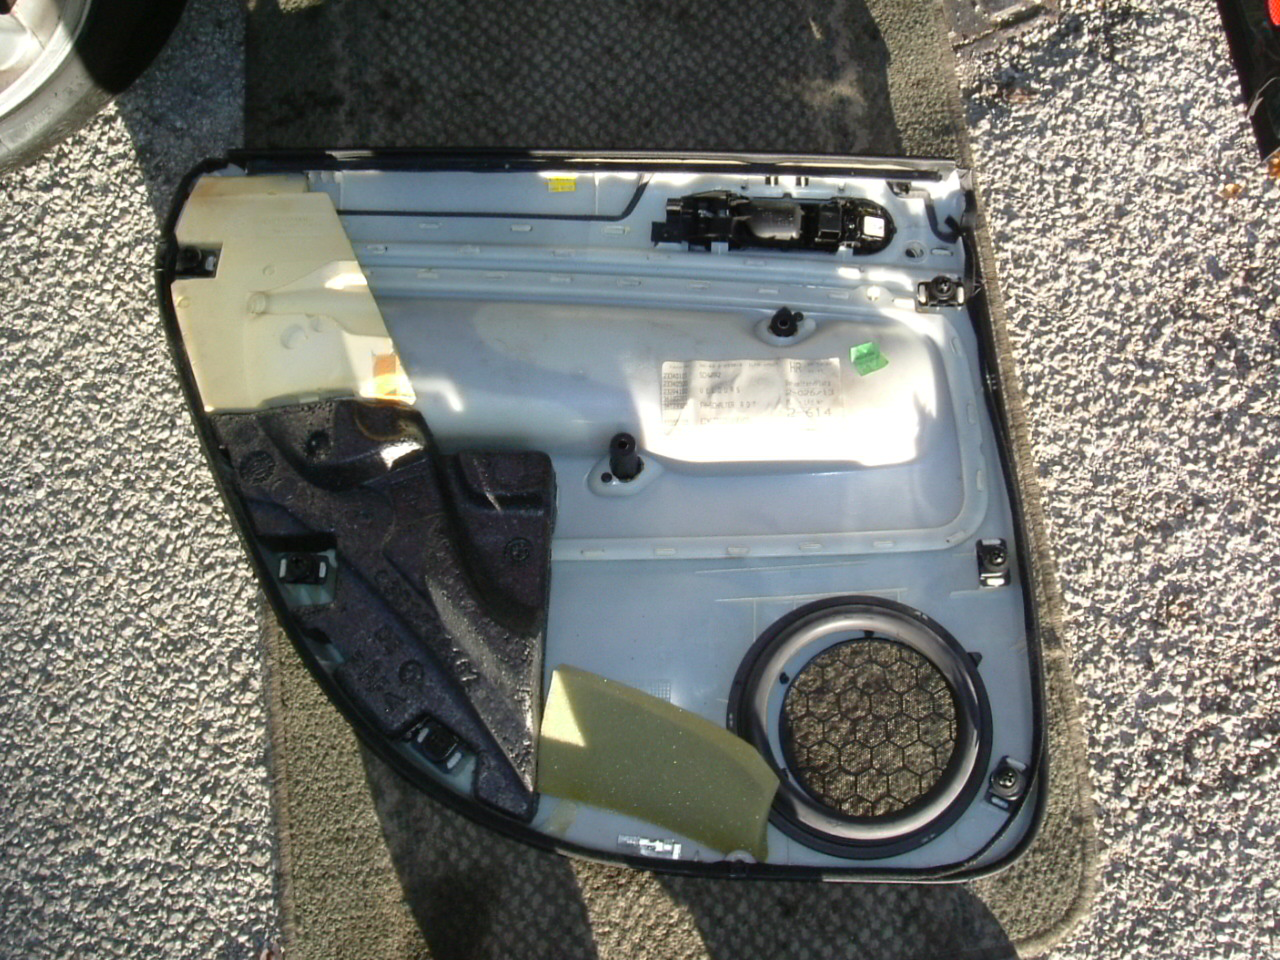 If Removing A Front Door Card There Is No Need To Pull Away The Wing  Mirrors Internal Cover As It Does Not Get In The Way And The Proceedure  Remains The ...